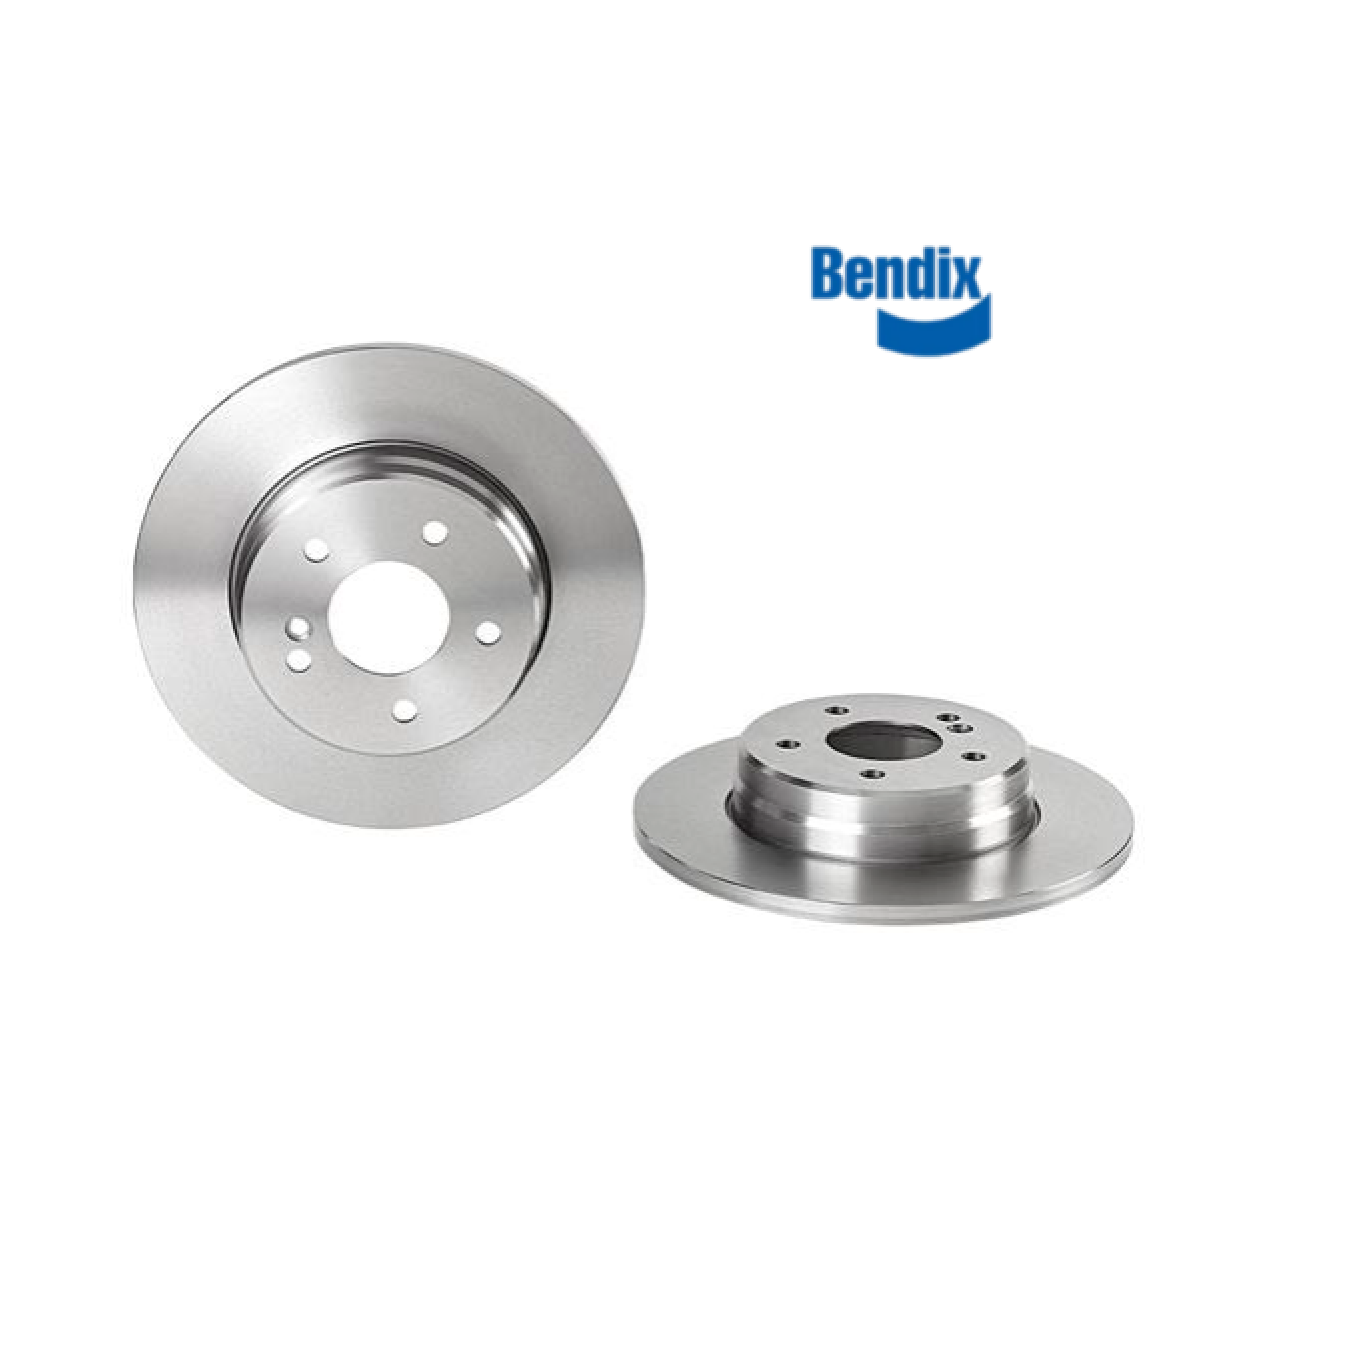 PAIR OF REAR BRAKE DISCS MERCEDES E CLASS T-MODEL BENDIX FOR A2104230512